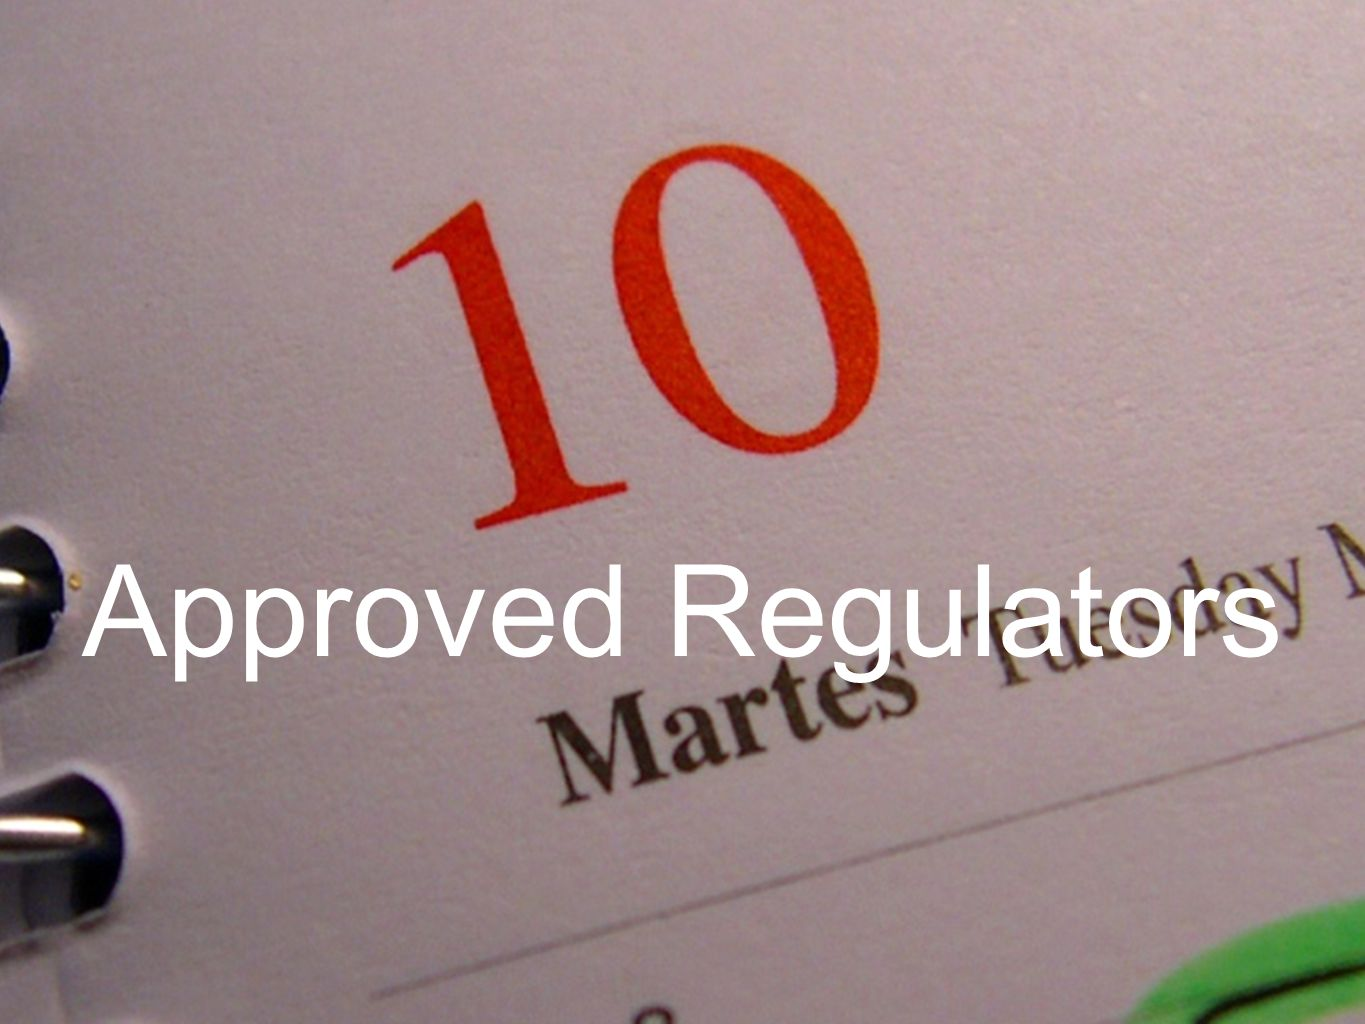 Approved Regulators